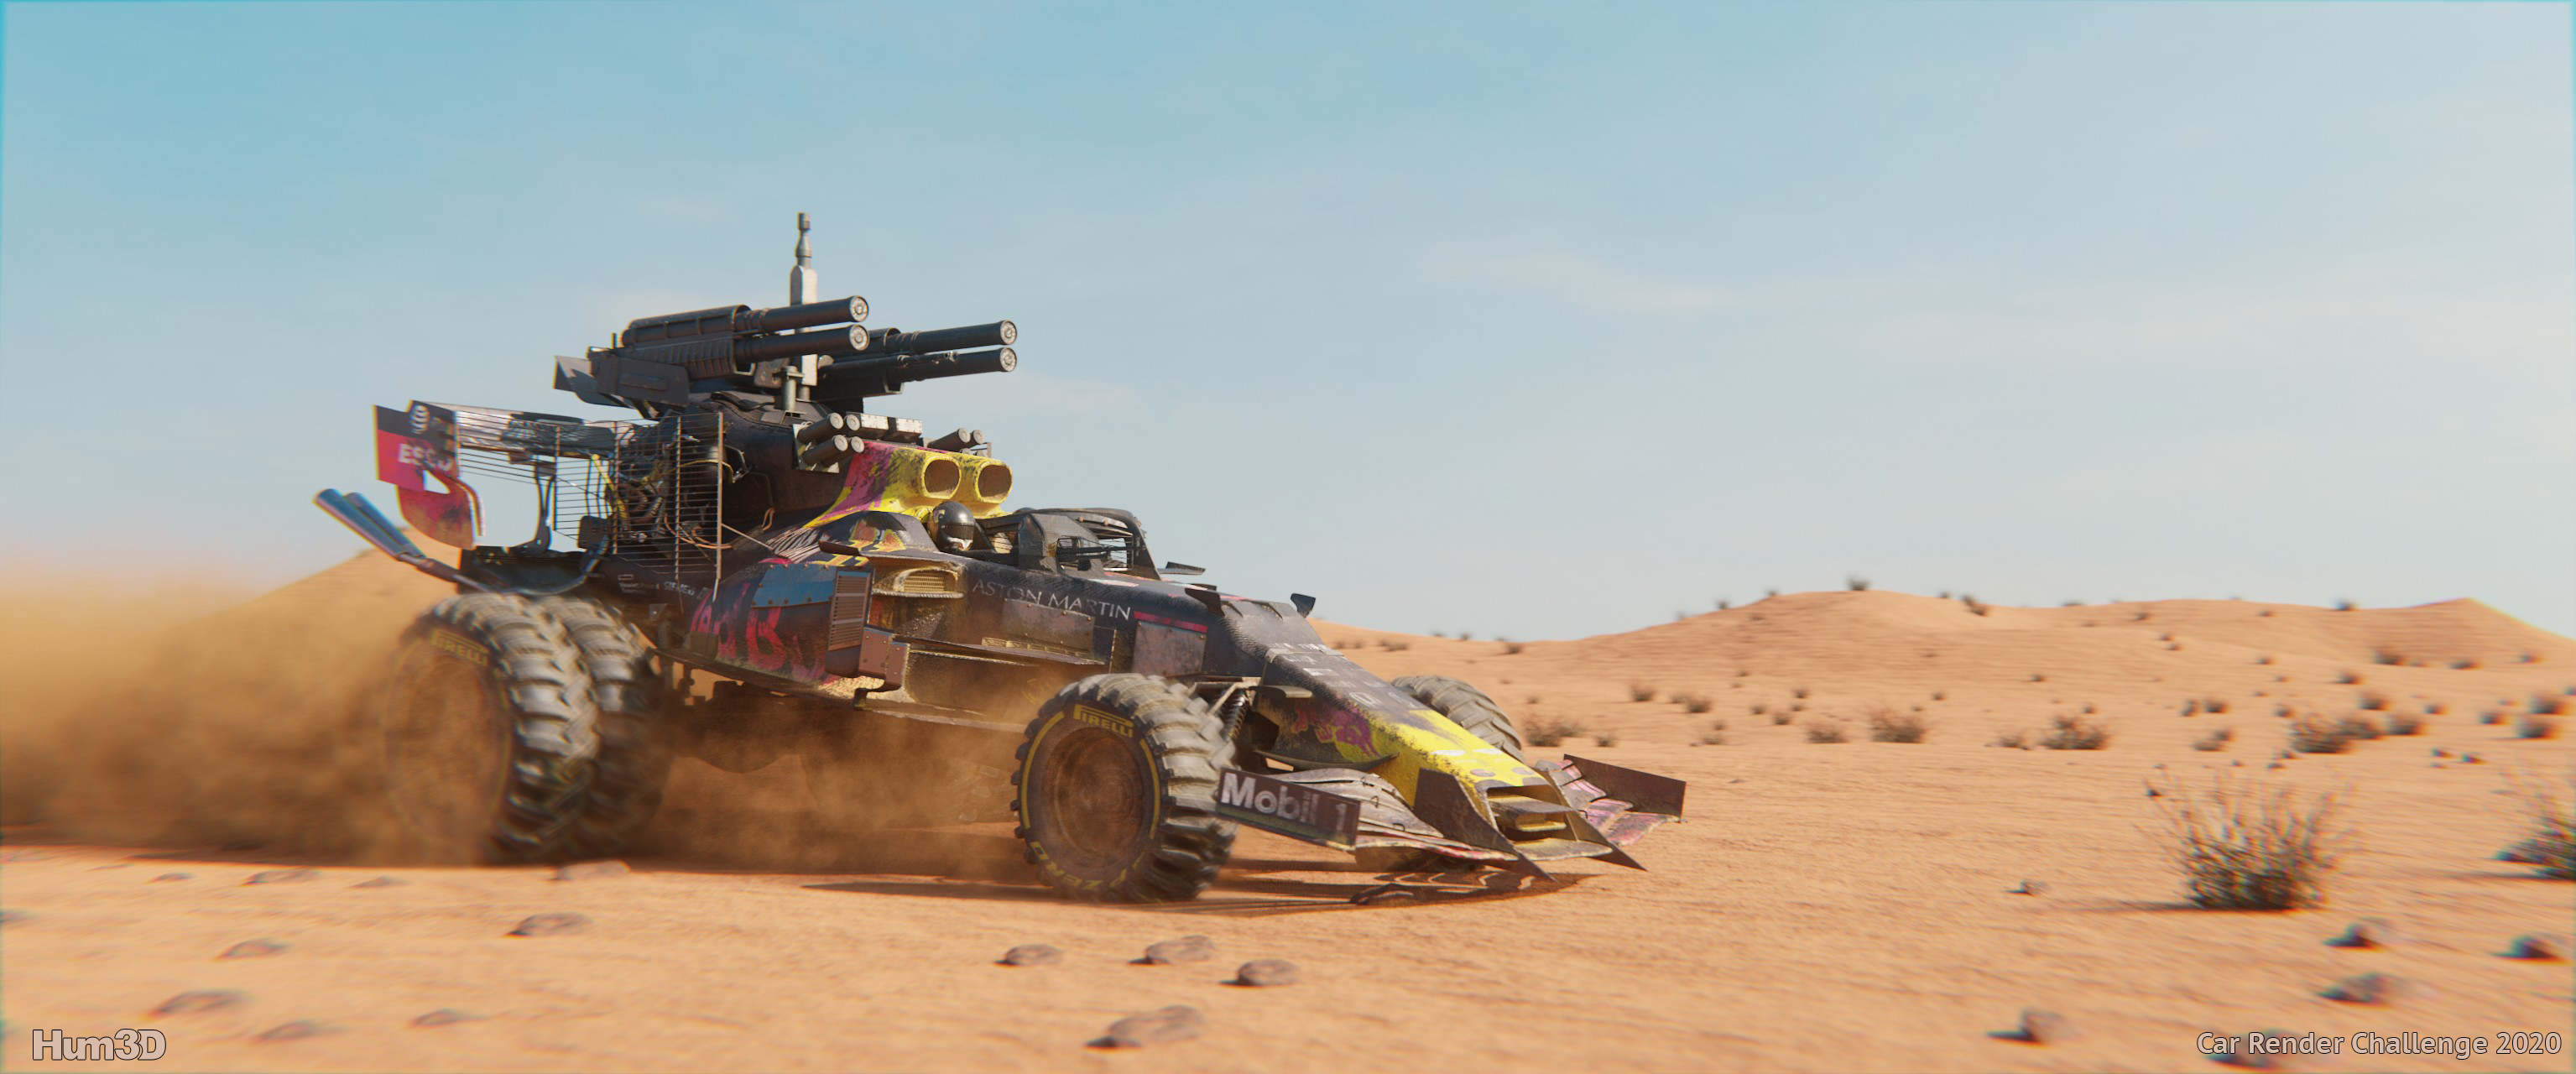 Mad Max F1 by Christoph